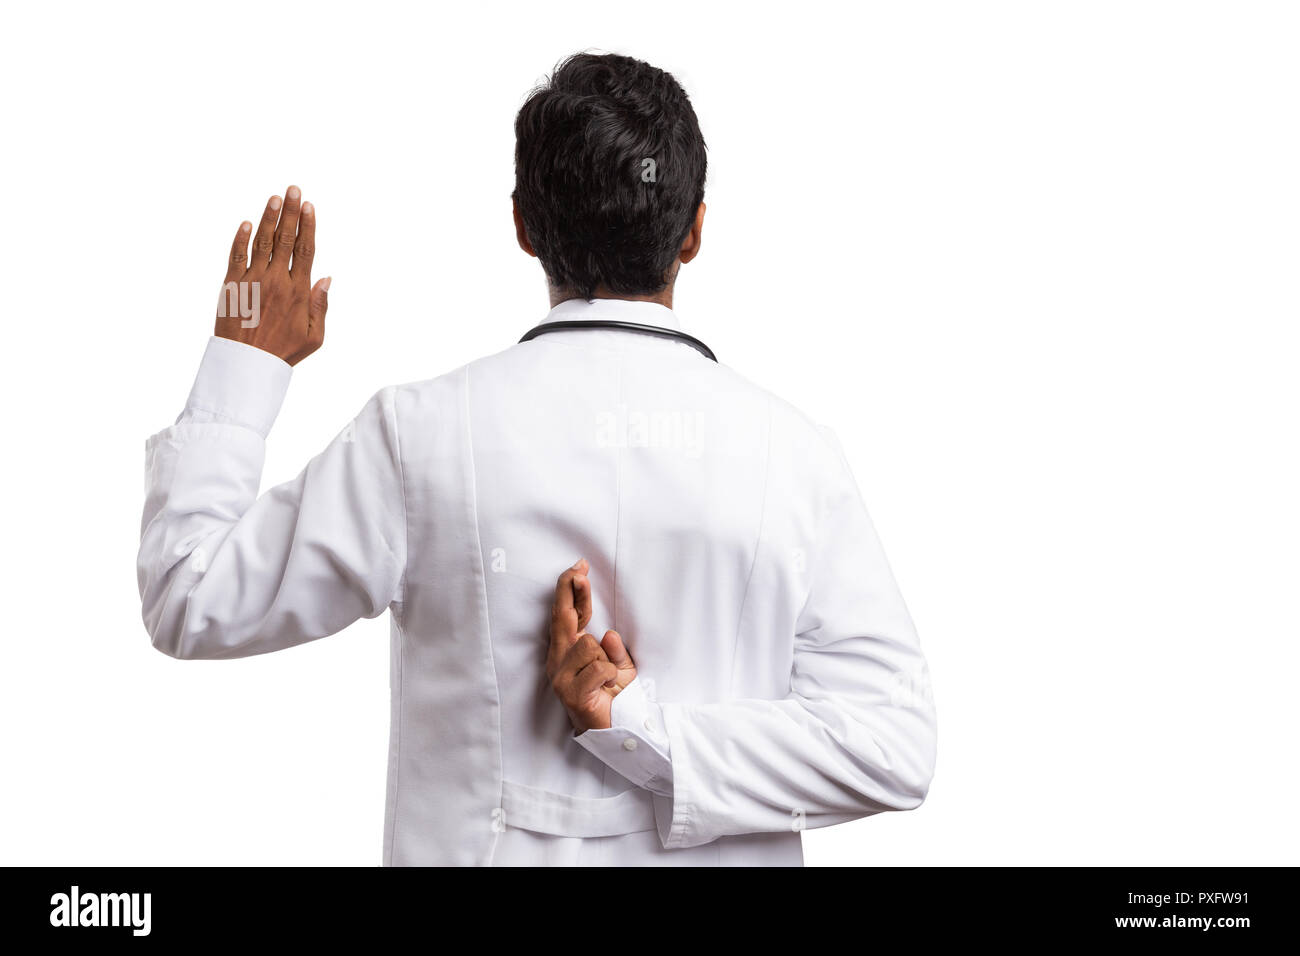 Fake oath made by indian doctor with fingers crossed behind back and raised palm isolated on white background - Stock Image